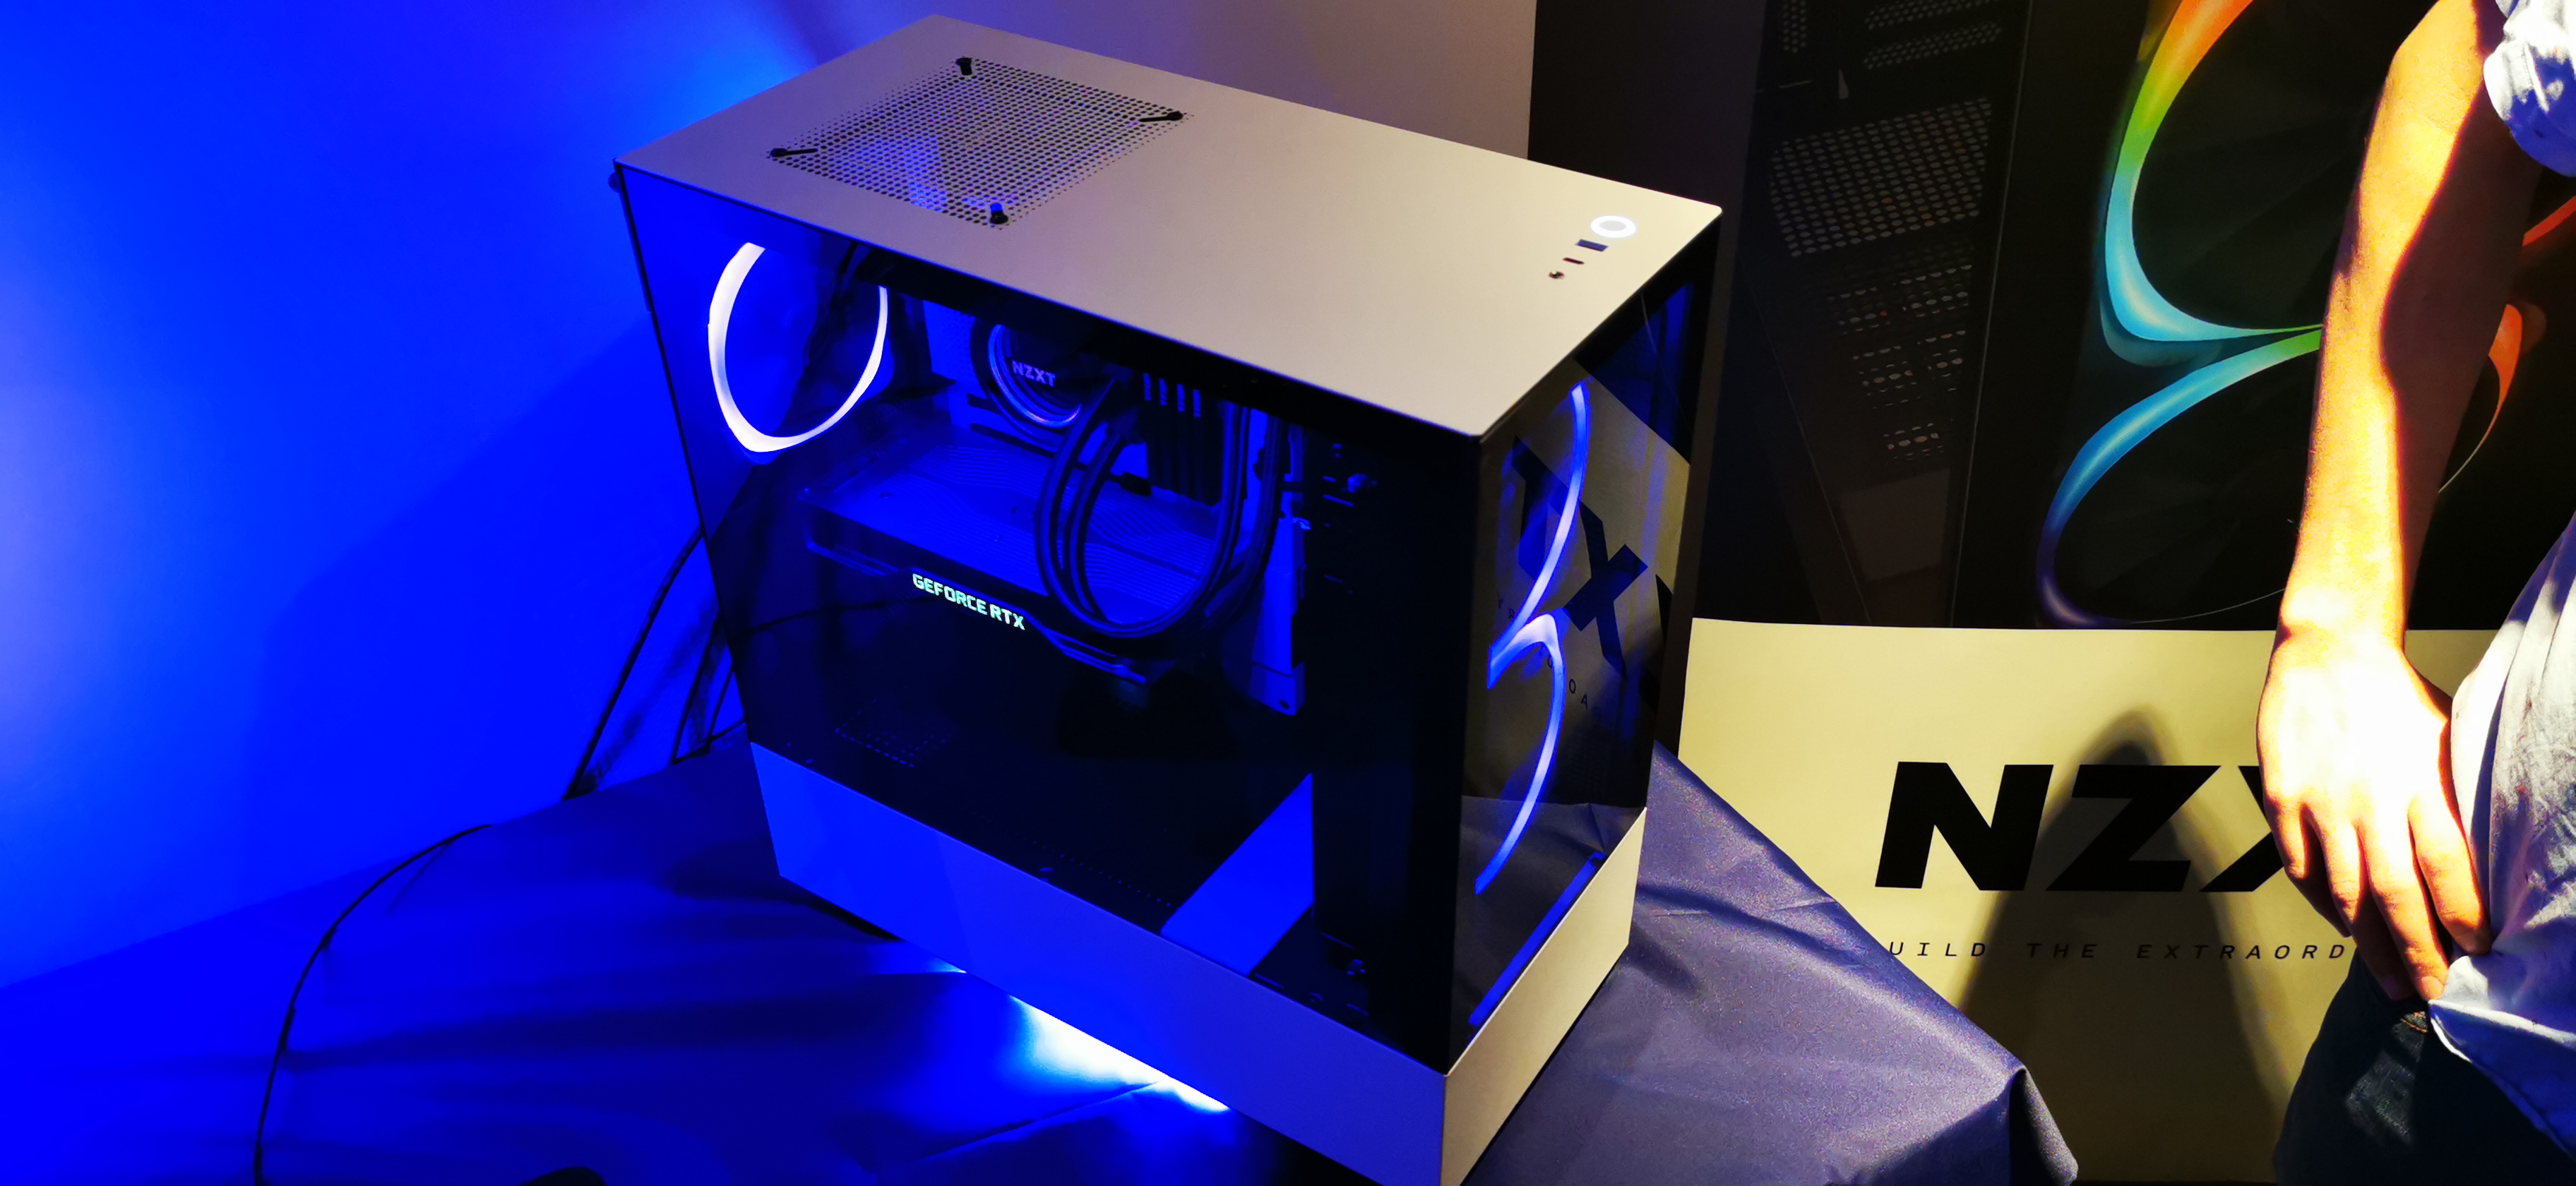 Nzxt Refreshes H Series New H510 Elite Chassis With Rgb